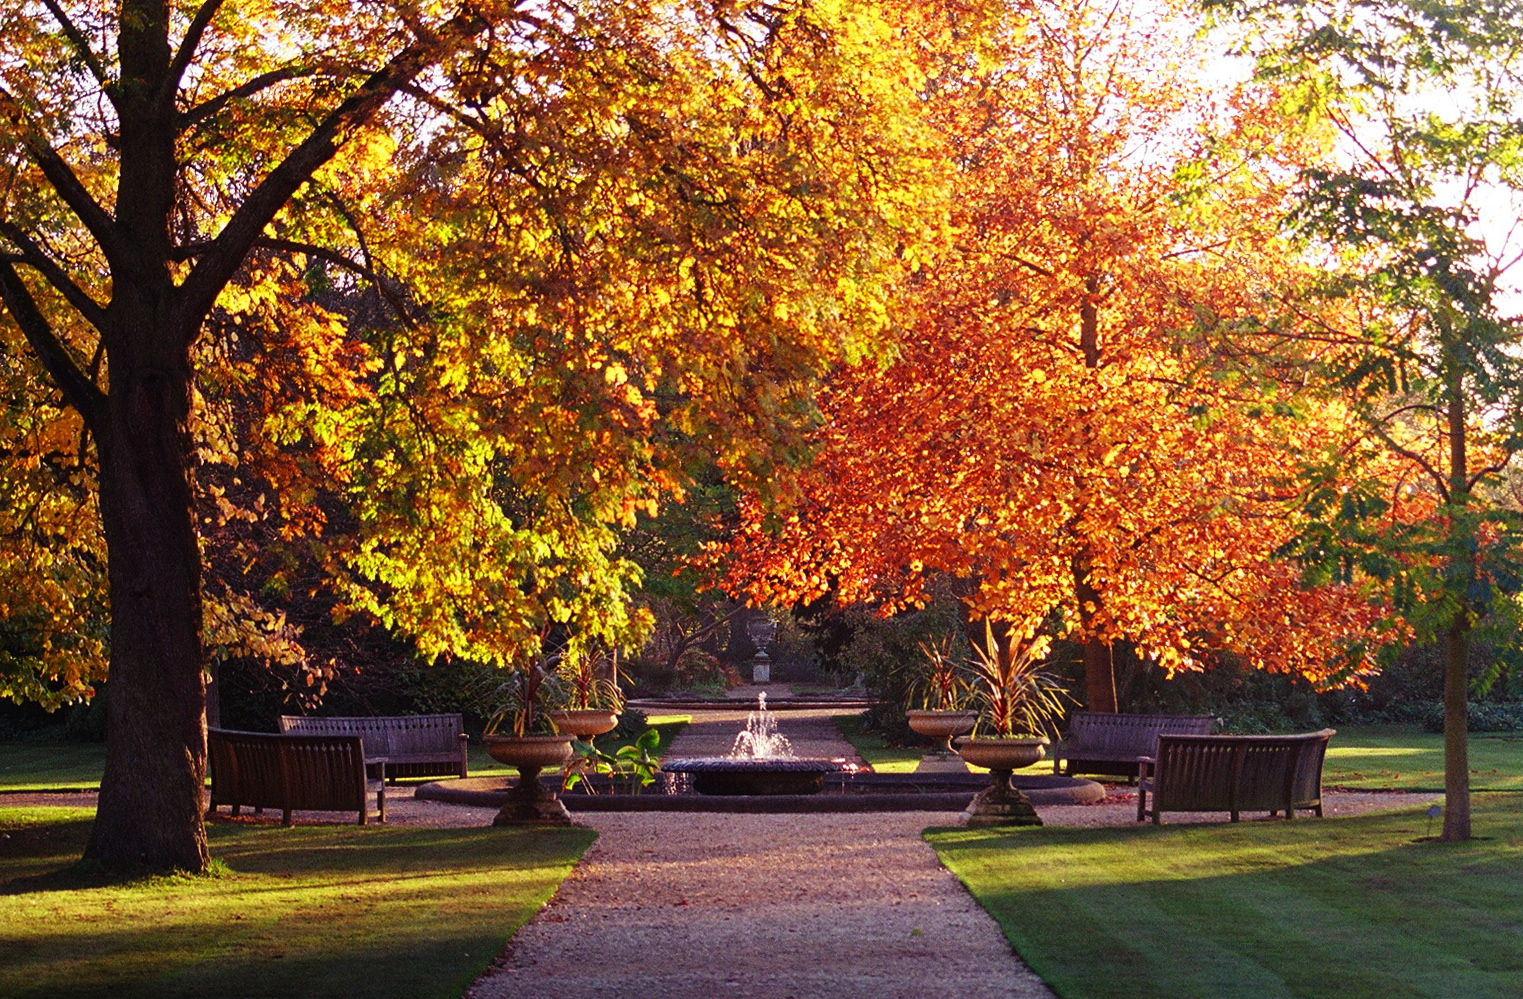 Oxford_Botanic_Garden_in_Autumn_2004